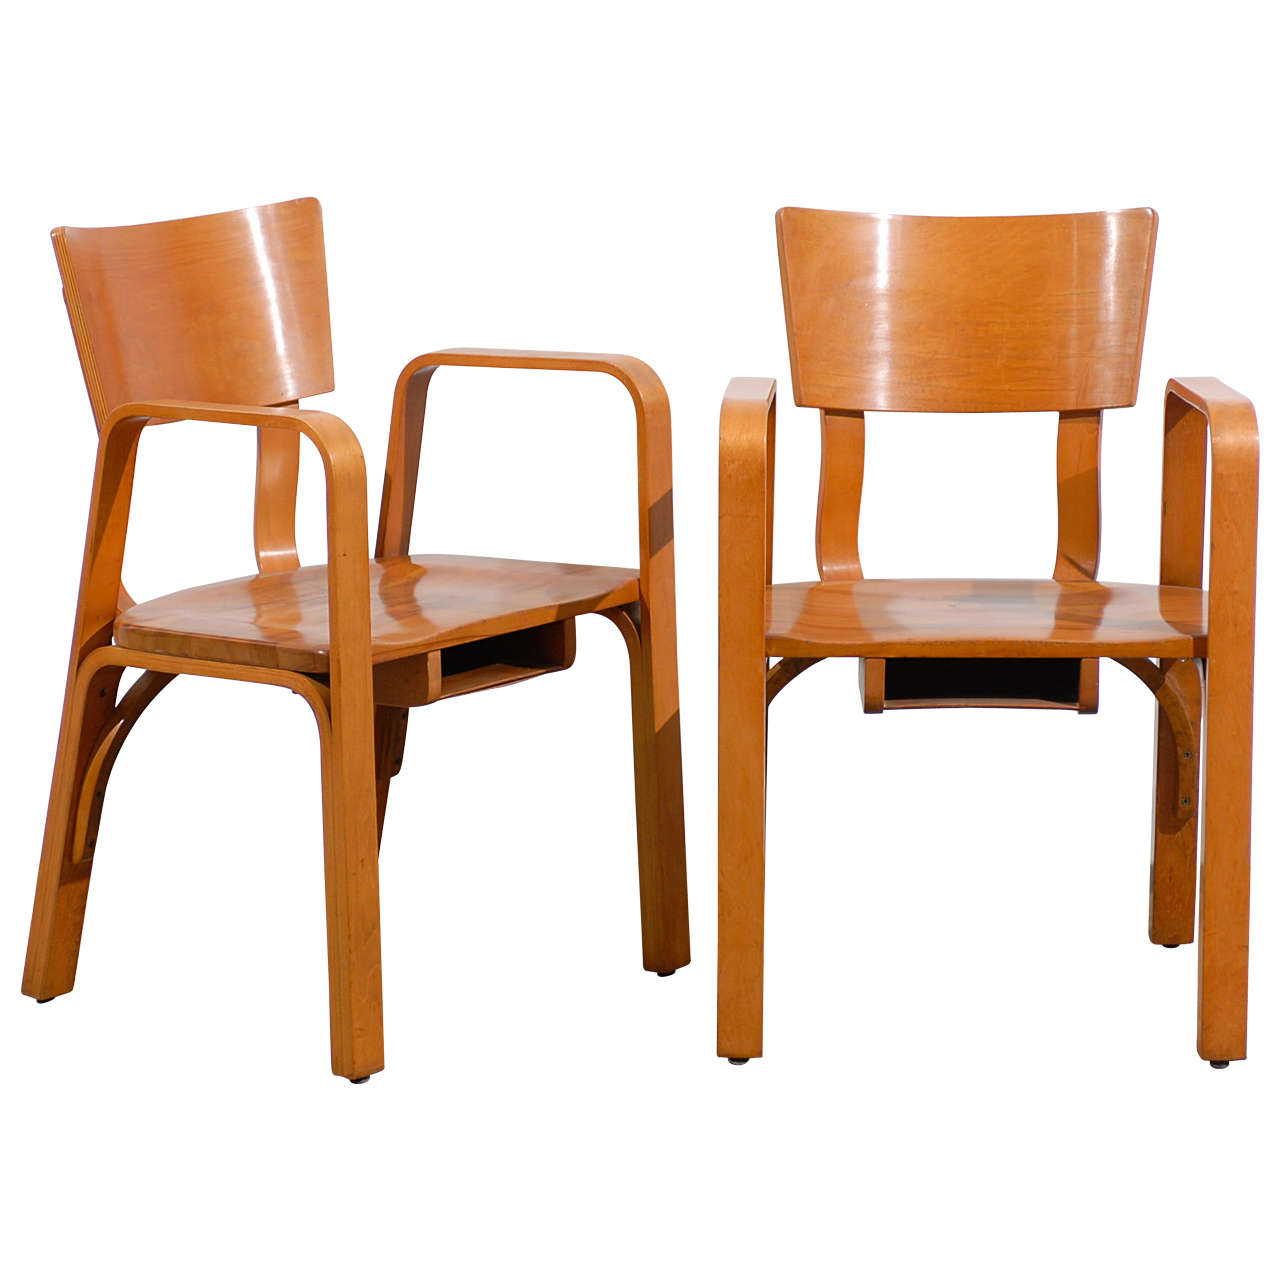 Superieur An Unusual Pair Of Bent Plywood Arm Chairs By Thonet For Sale